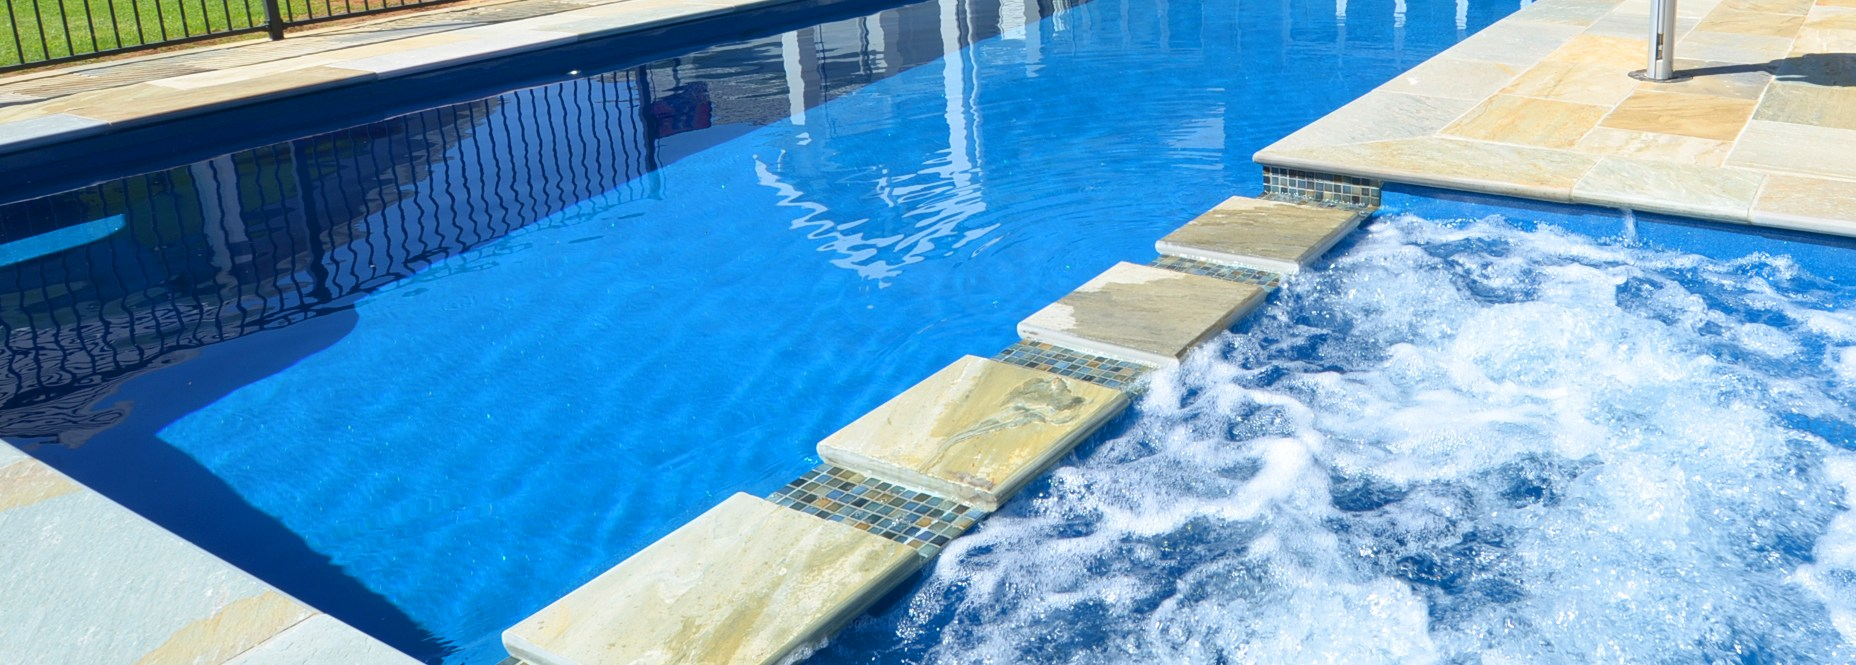 bgs pools and spas compass fibreglass swimming pools with ...